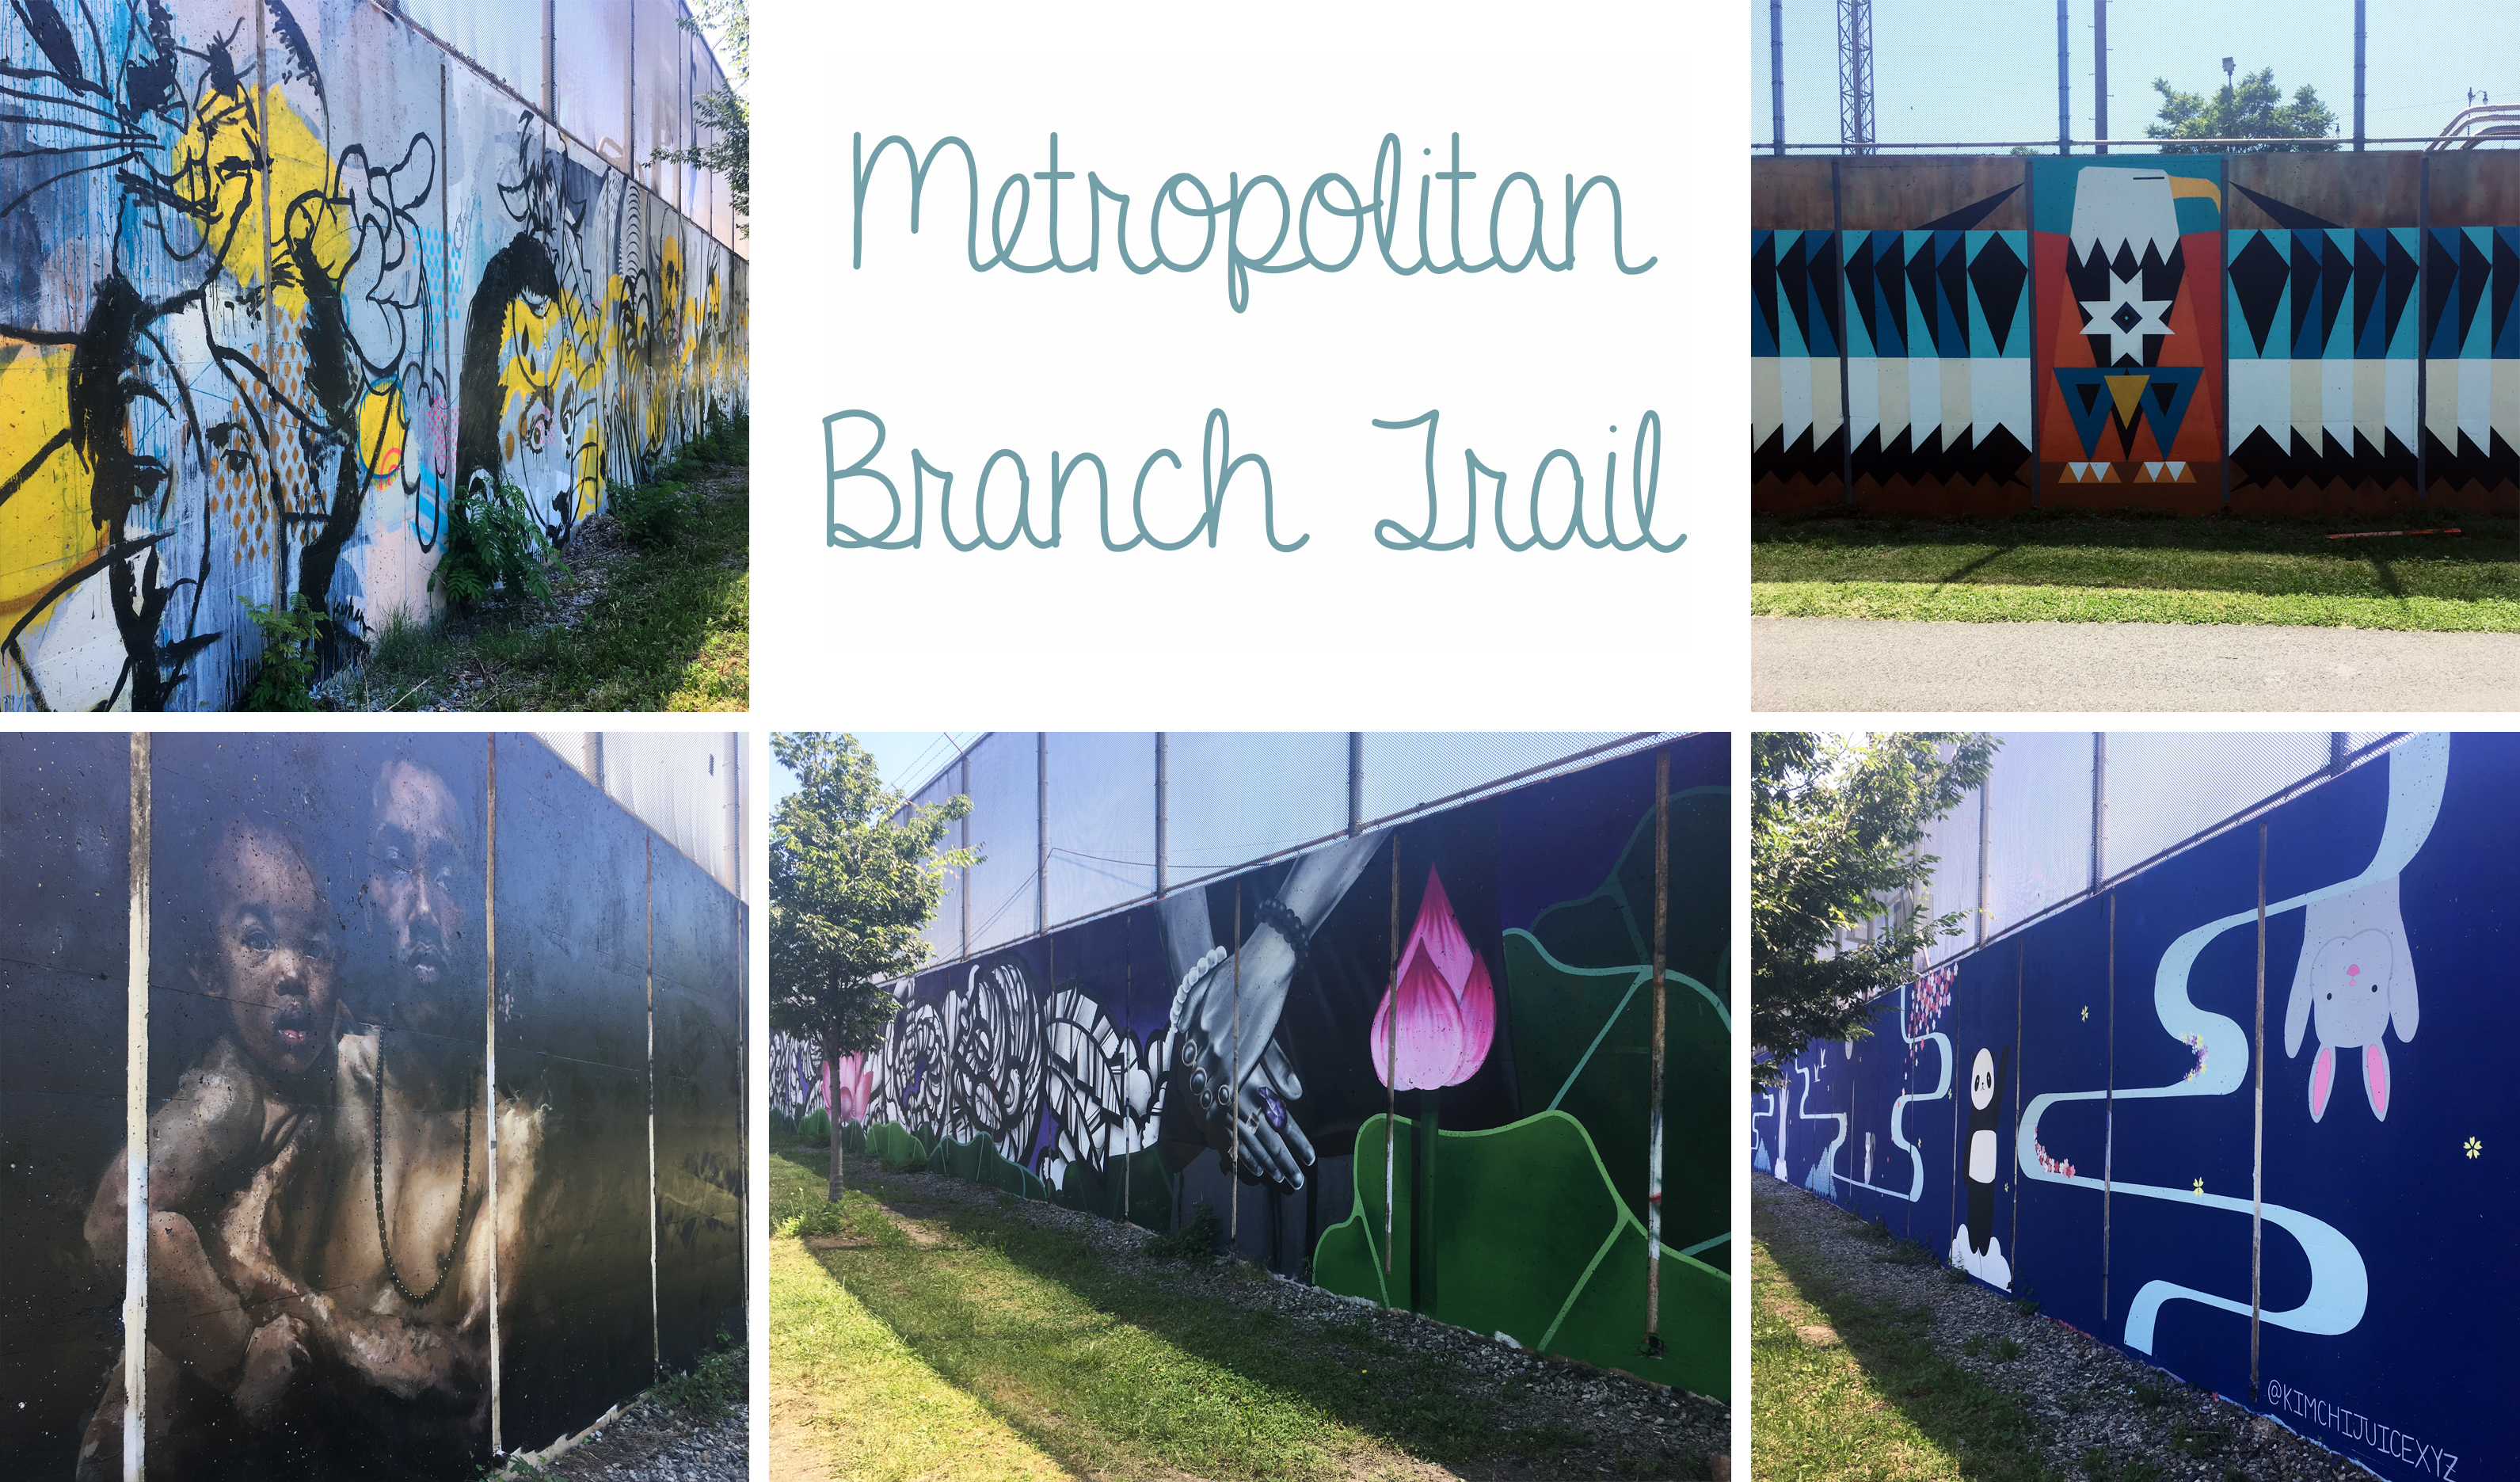 Metropolitan Branch Trail